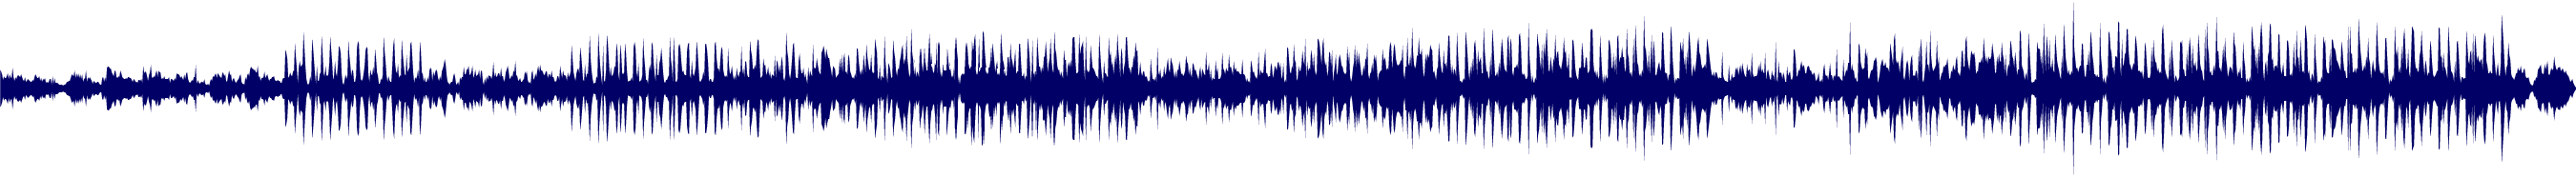 waveform of track #68215